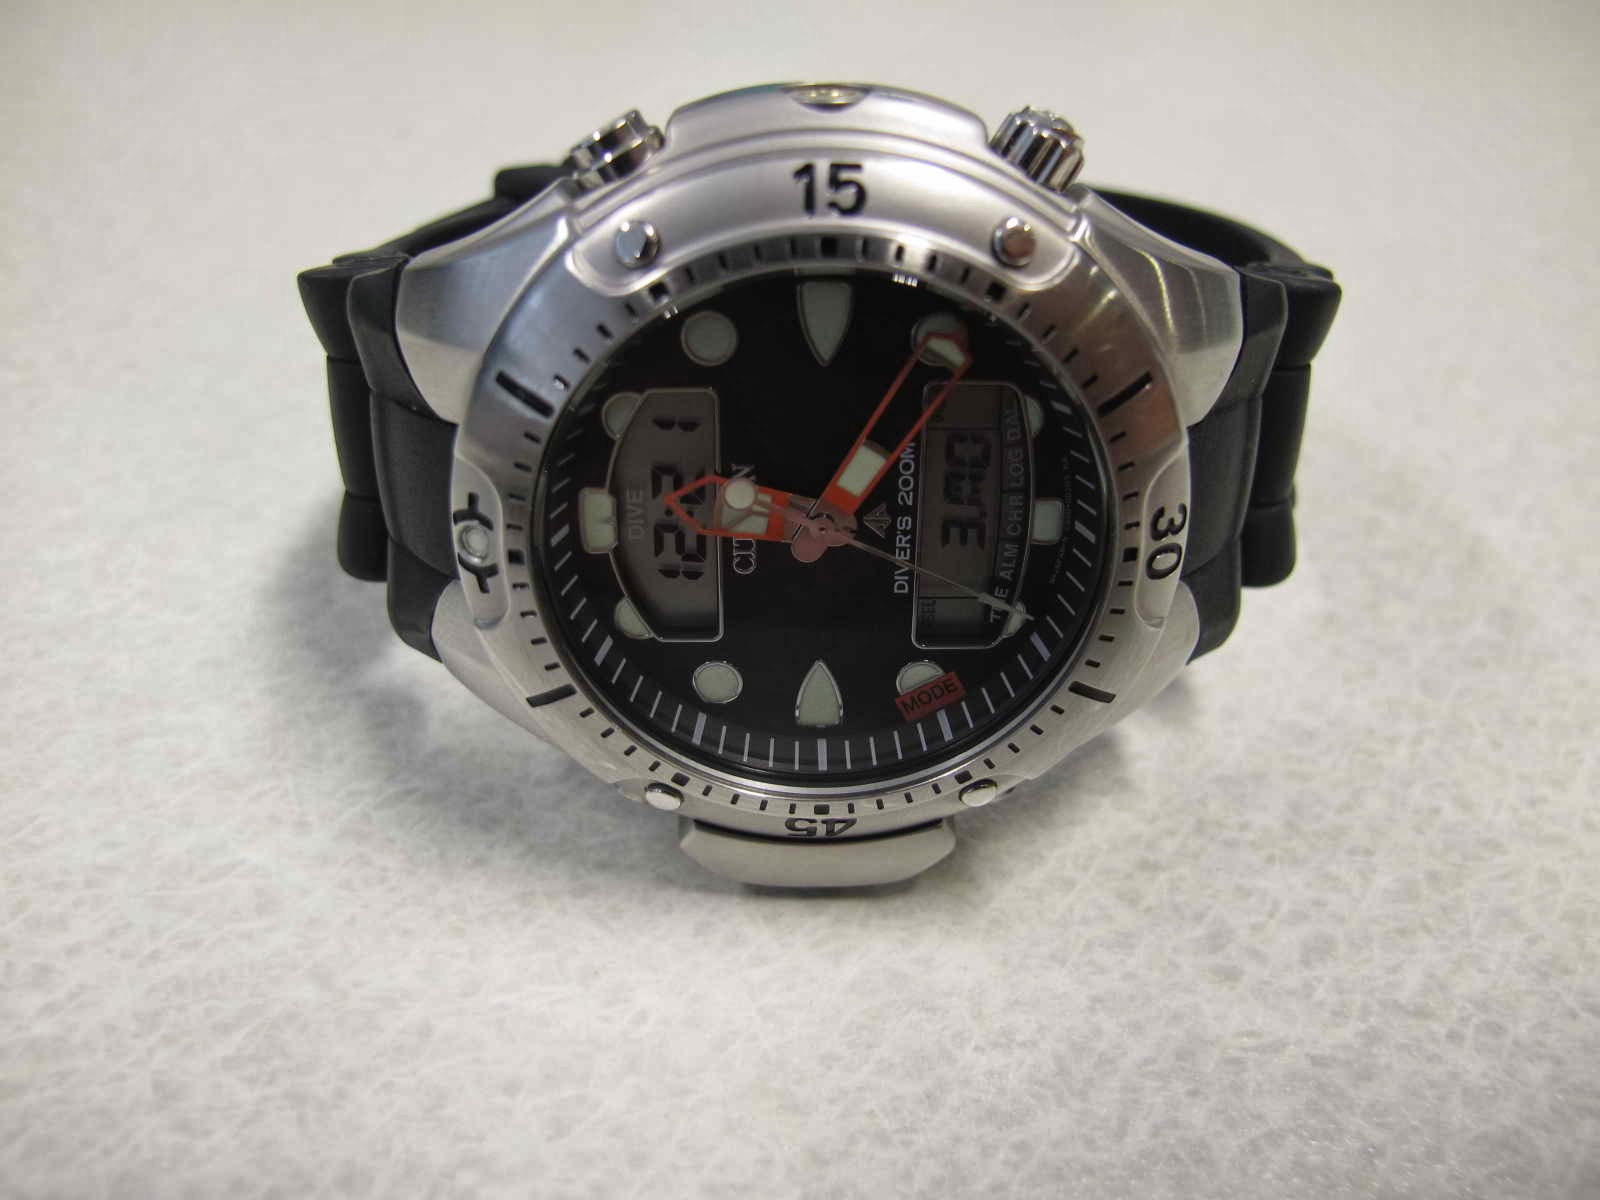 Maximuswatches Jual Beli Jam Tangan Second Baru Original Koleksi Pria Expedition 6631 Black Orange Triple Time Maximus